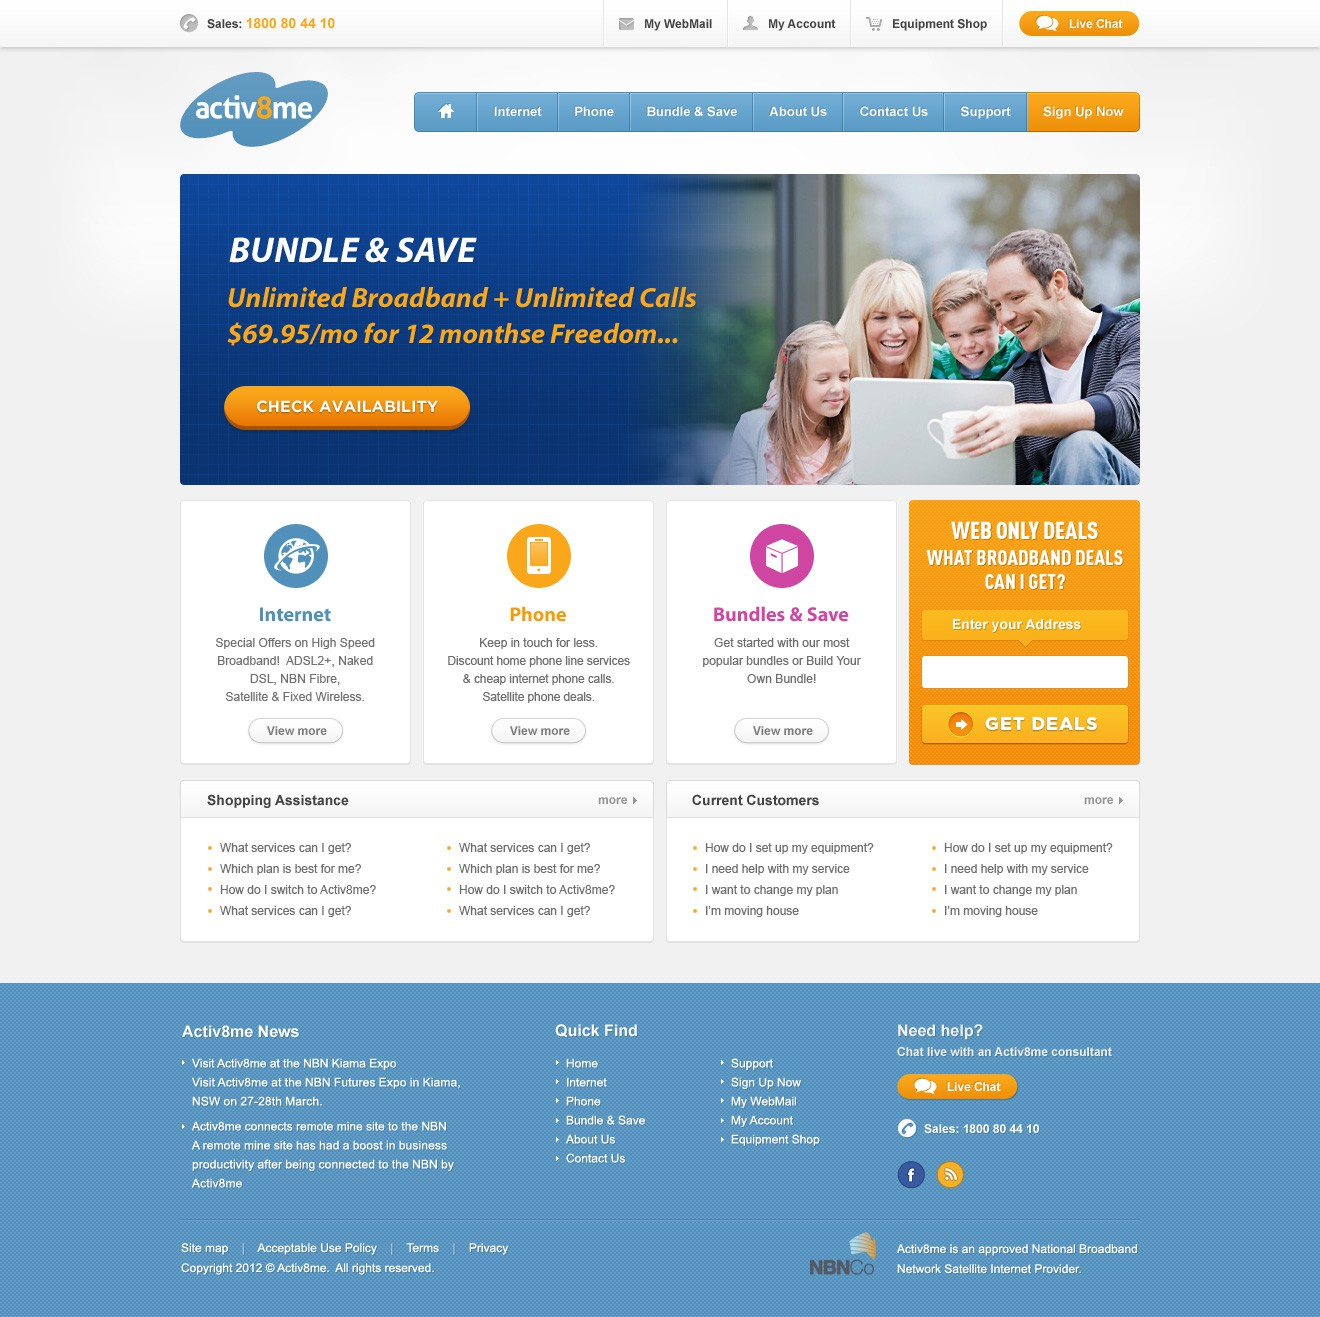 Activ8me Broadband needs a website redesign [2 pages]